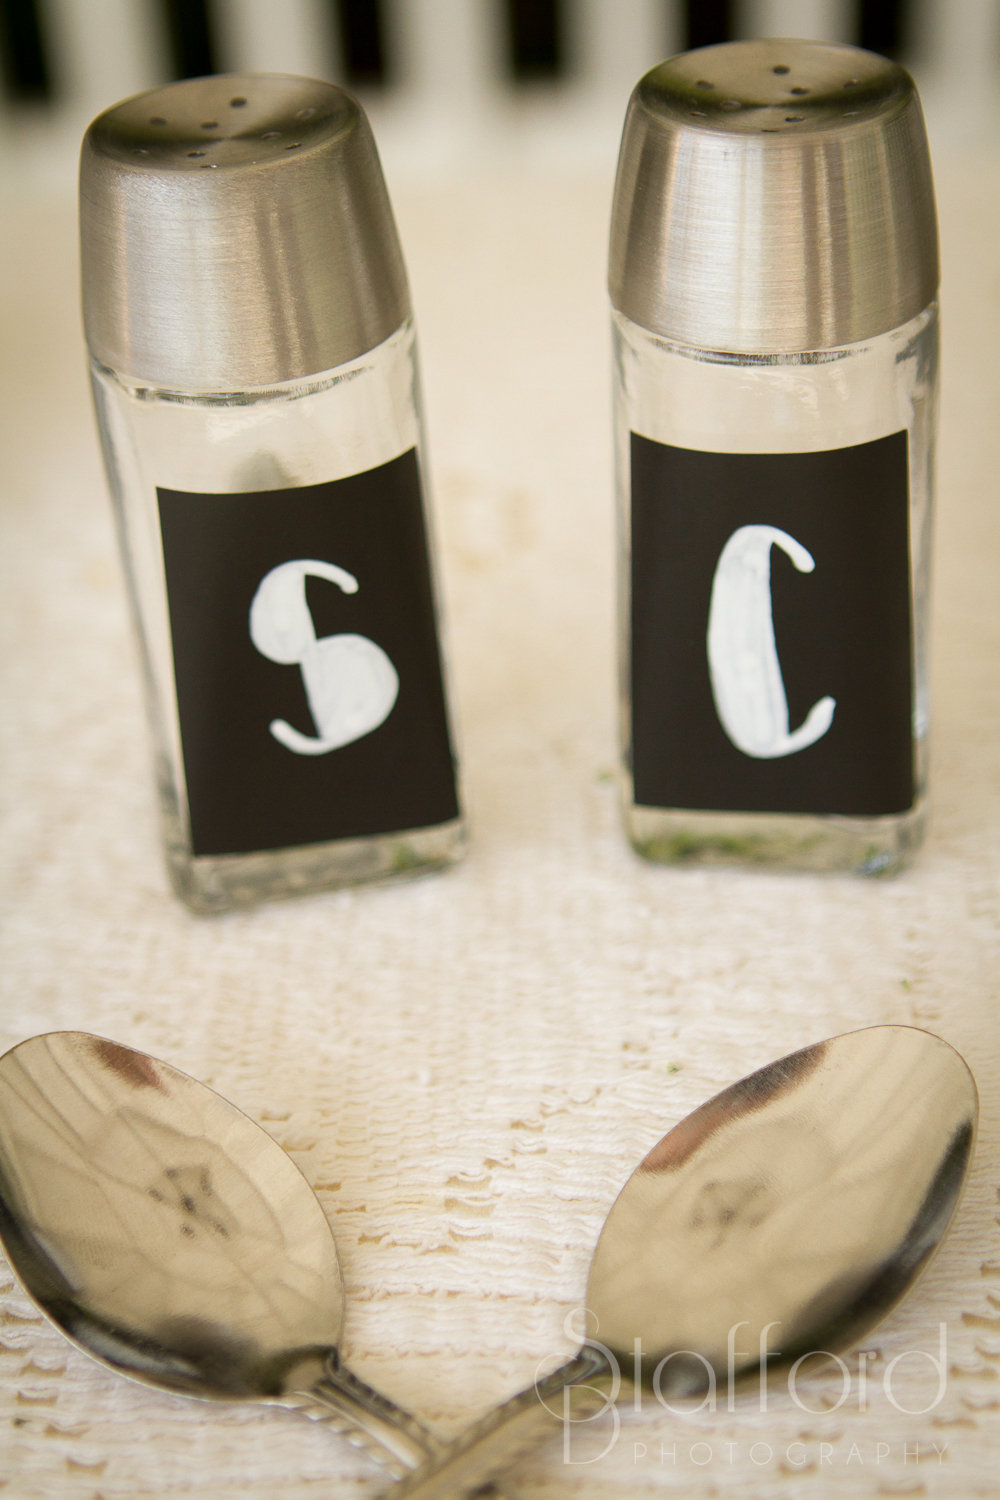 During the ceremony Sara and Cody put salt and pepper in shakers and glued them together. Salt and pepper are always together. This symbolizes their marriage of being together no matter what. And if you pull them apart you will break either one or both of them.